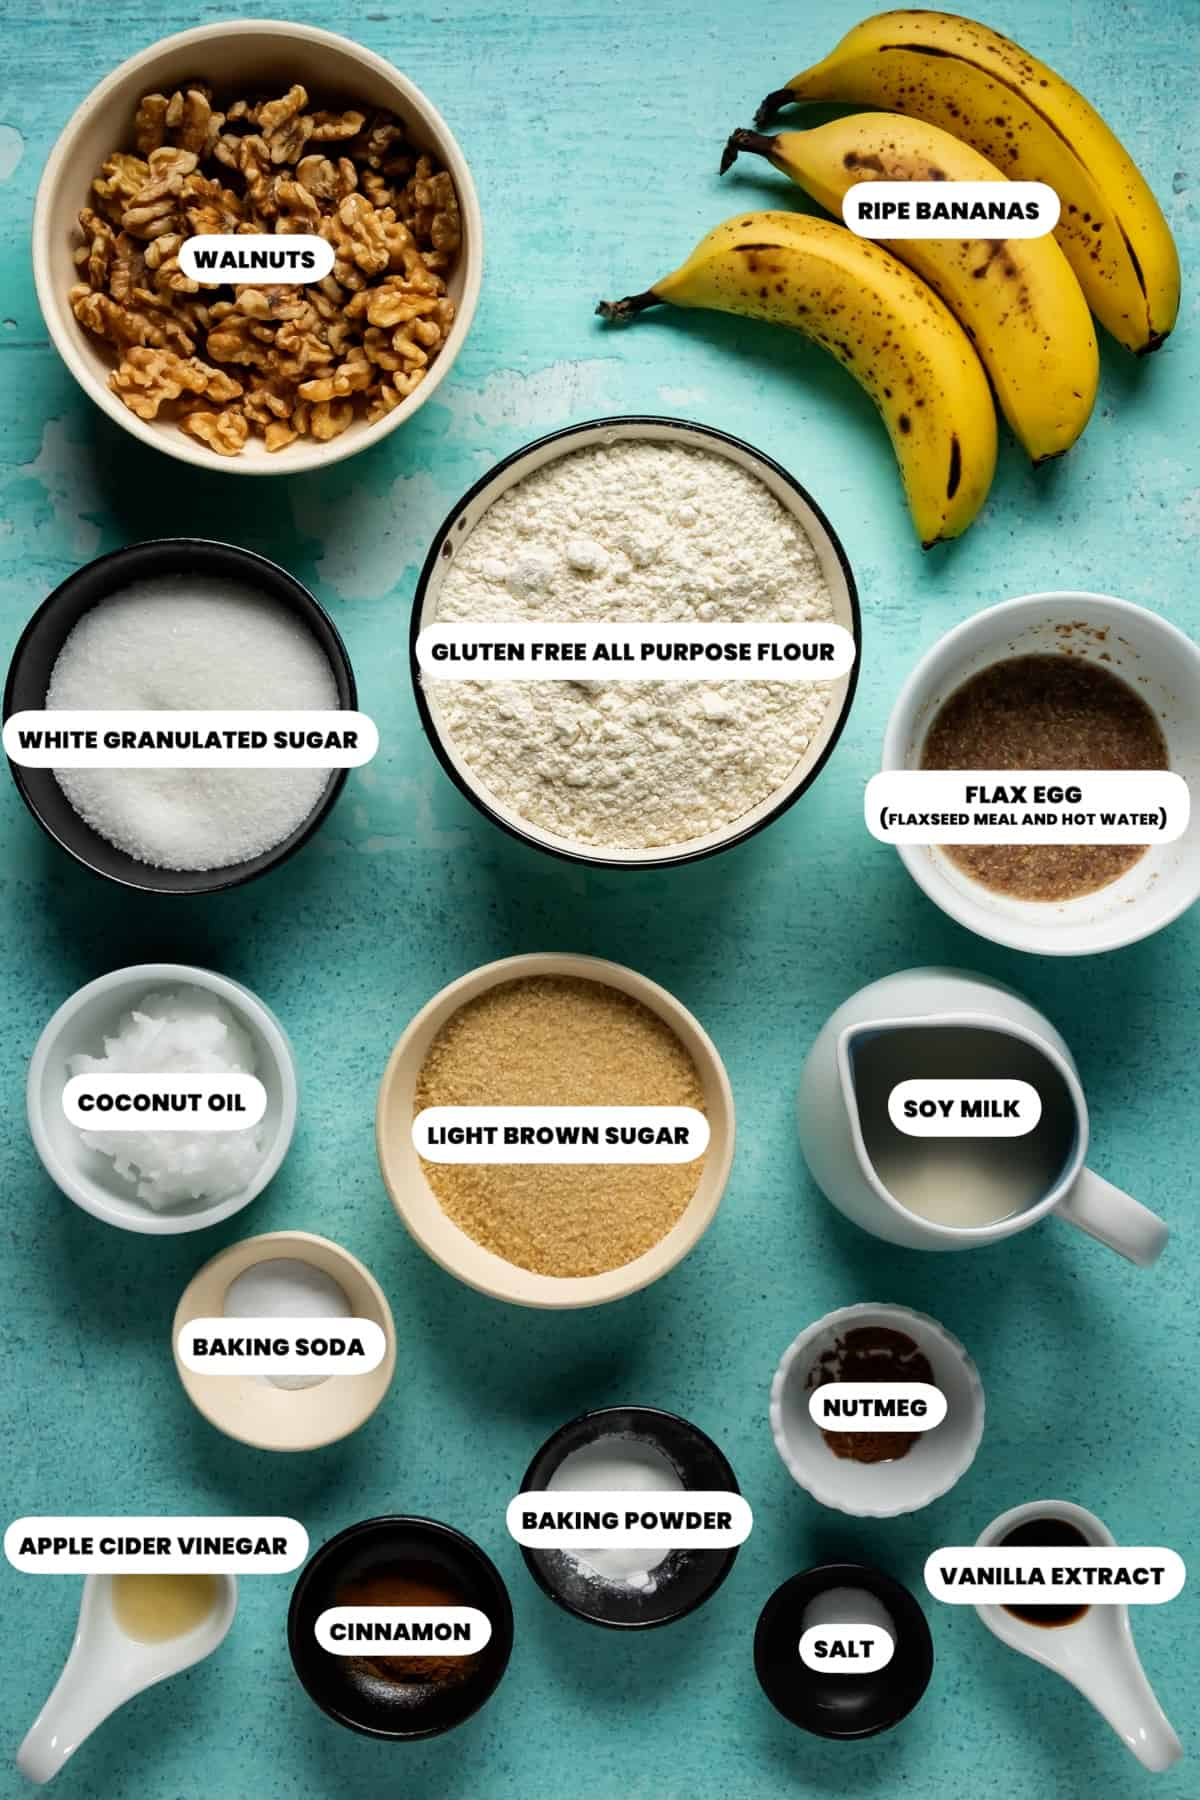 Photo of the ingredients needed to make vegan gluten free banana bread.